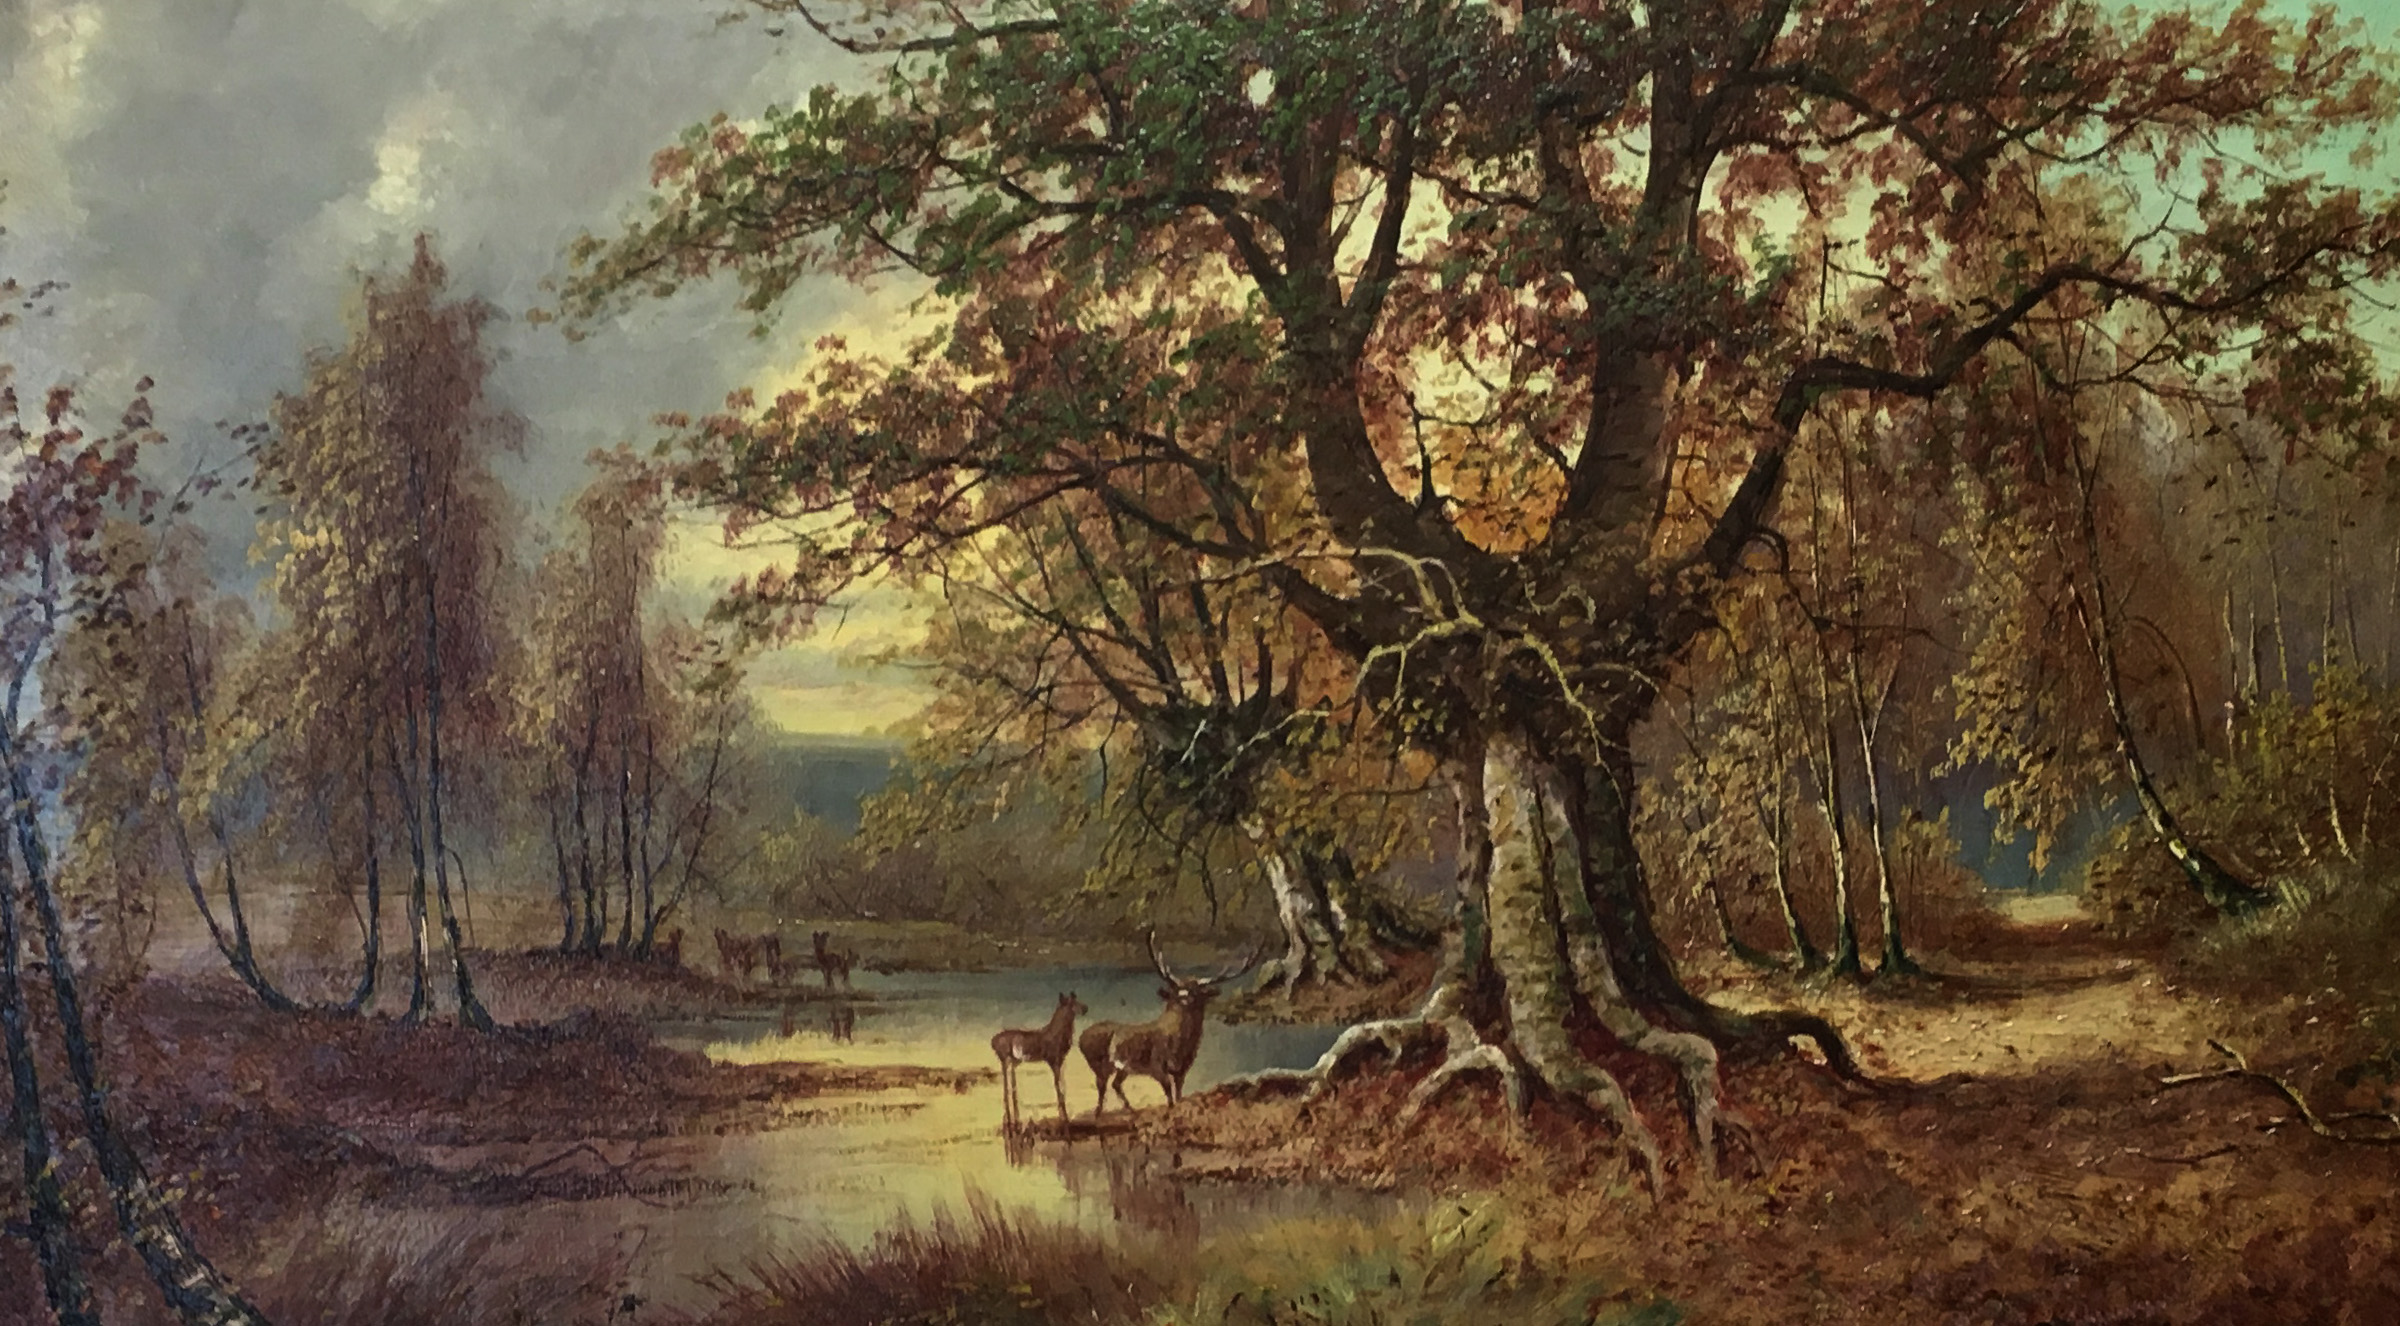 Painting of two deer, a lake, and a beautiful oak tree.  Symbolic of regional Appalachian landowners and our history of protecting trusts and estates from litigation.